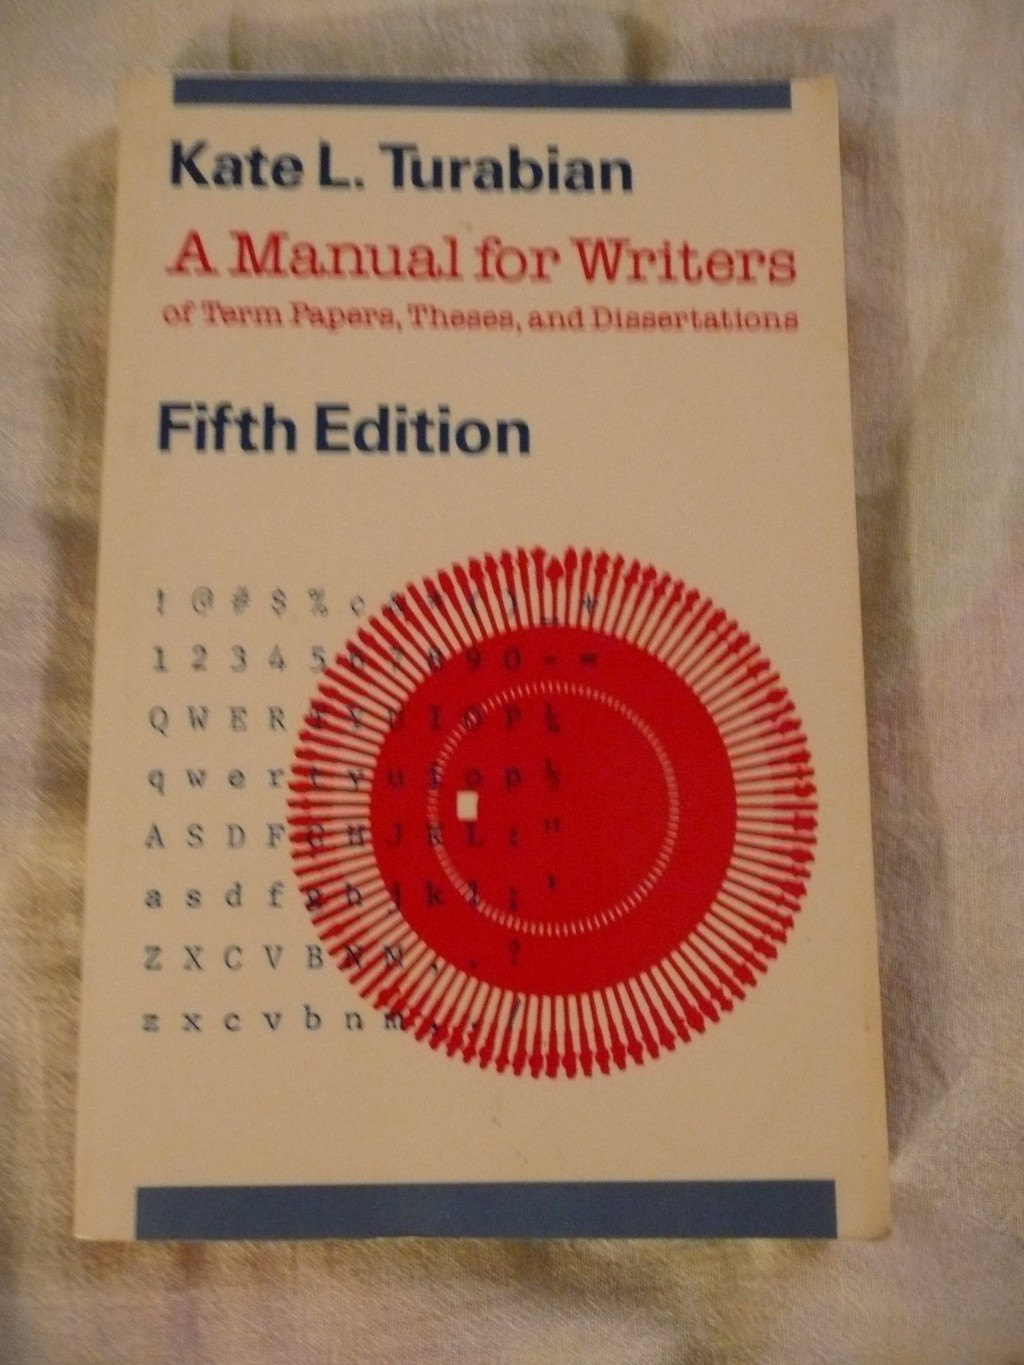 009 Manual For Writers Of Researchs Theses And Dissertations 9th Edition 91nltv7olql Frightening A Research Papers Pdf Large